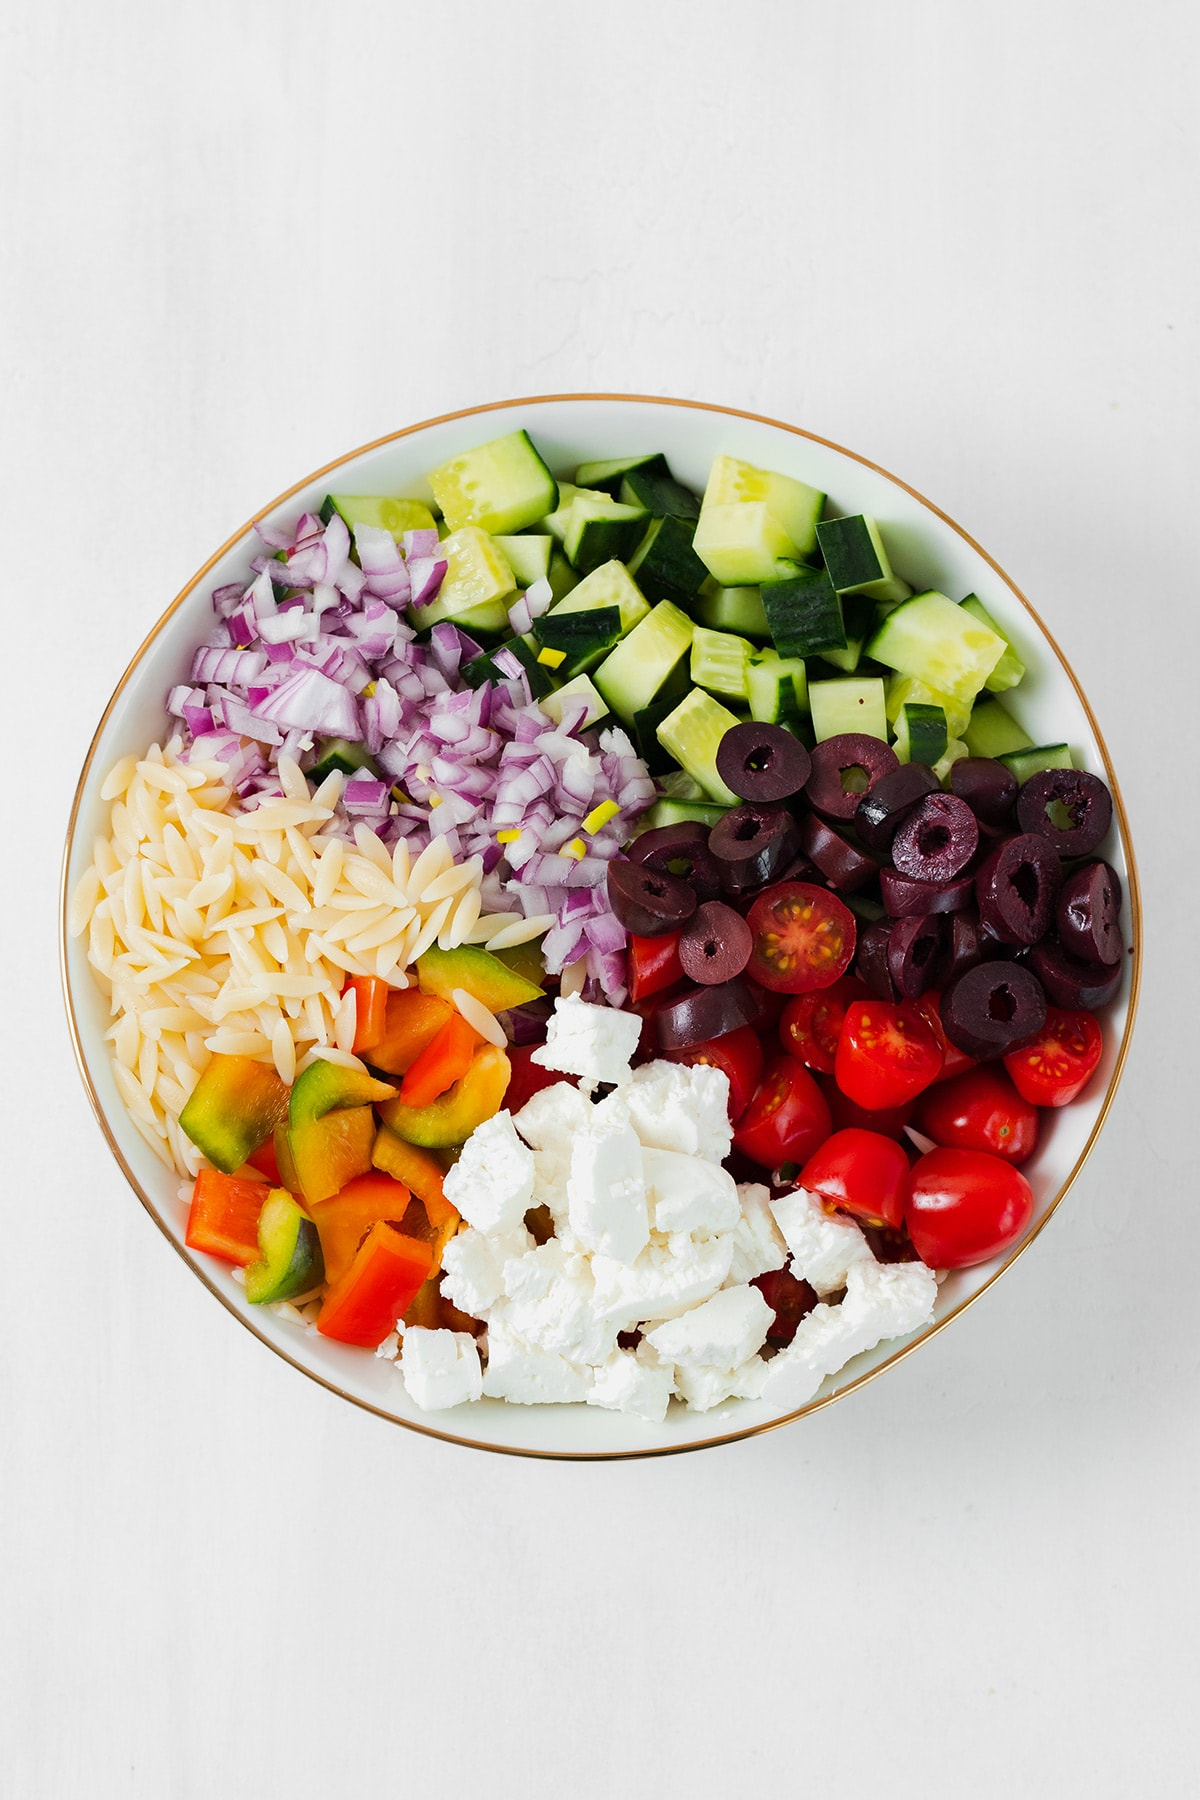 All the ingredients for the orzo salad chopped and laid out in a white bowl with a gold rim.